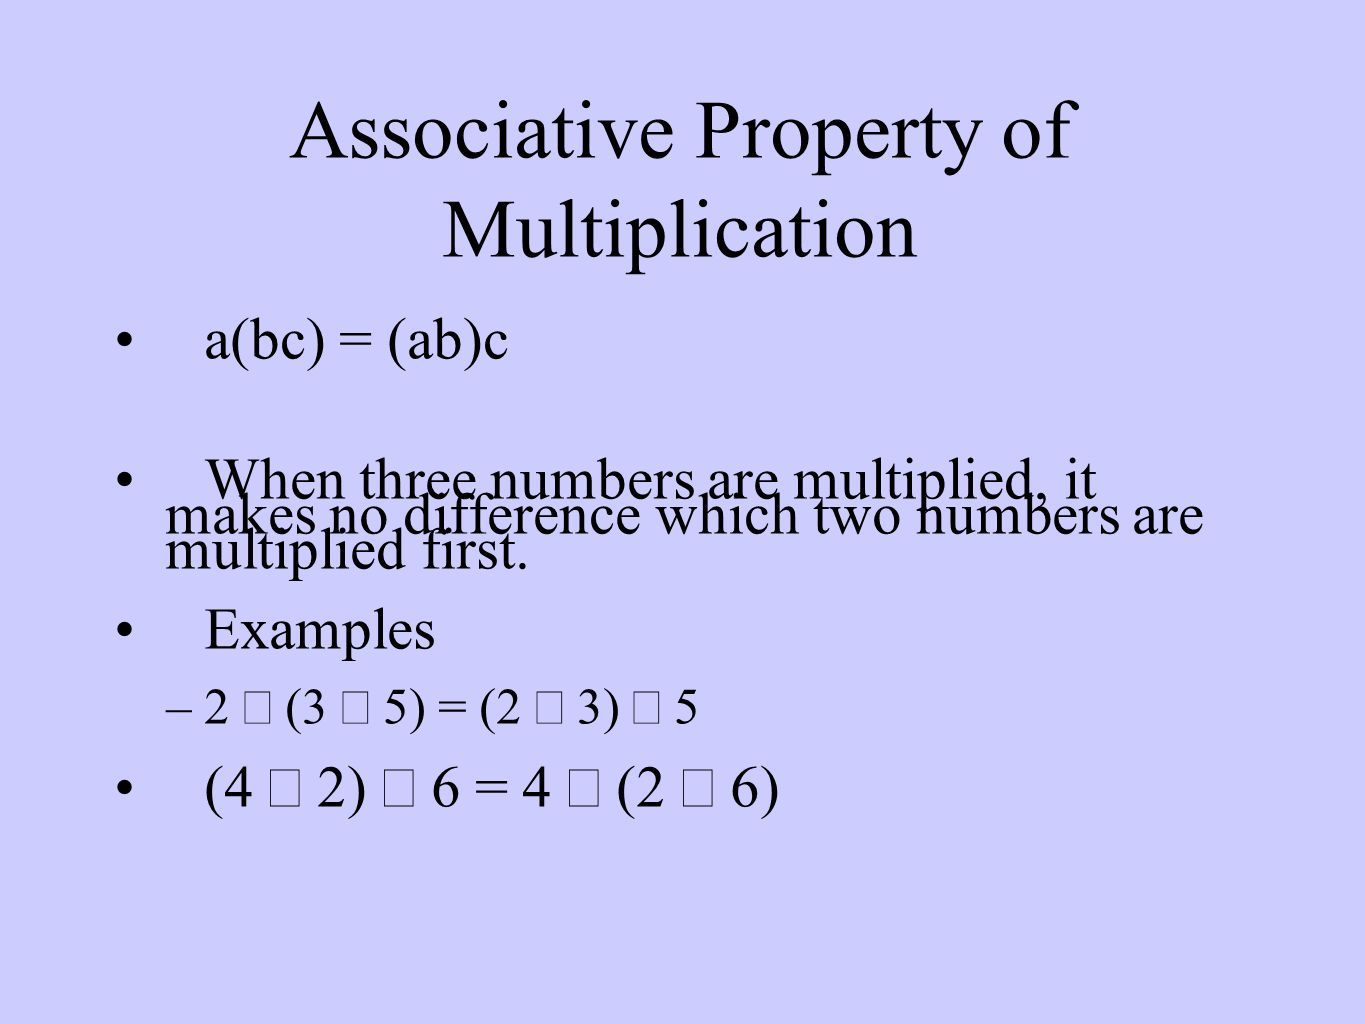 Associative Property of Multiplication a(bc) = (ab)c When three numbers are multiplied, it makes no difference which two numbers are multiplied first.